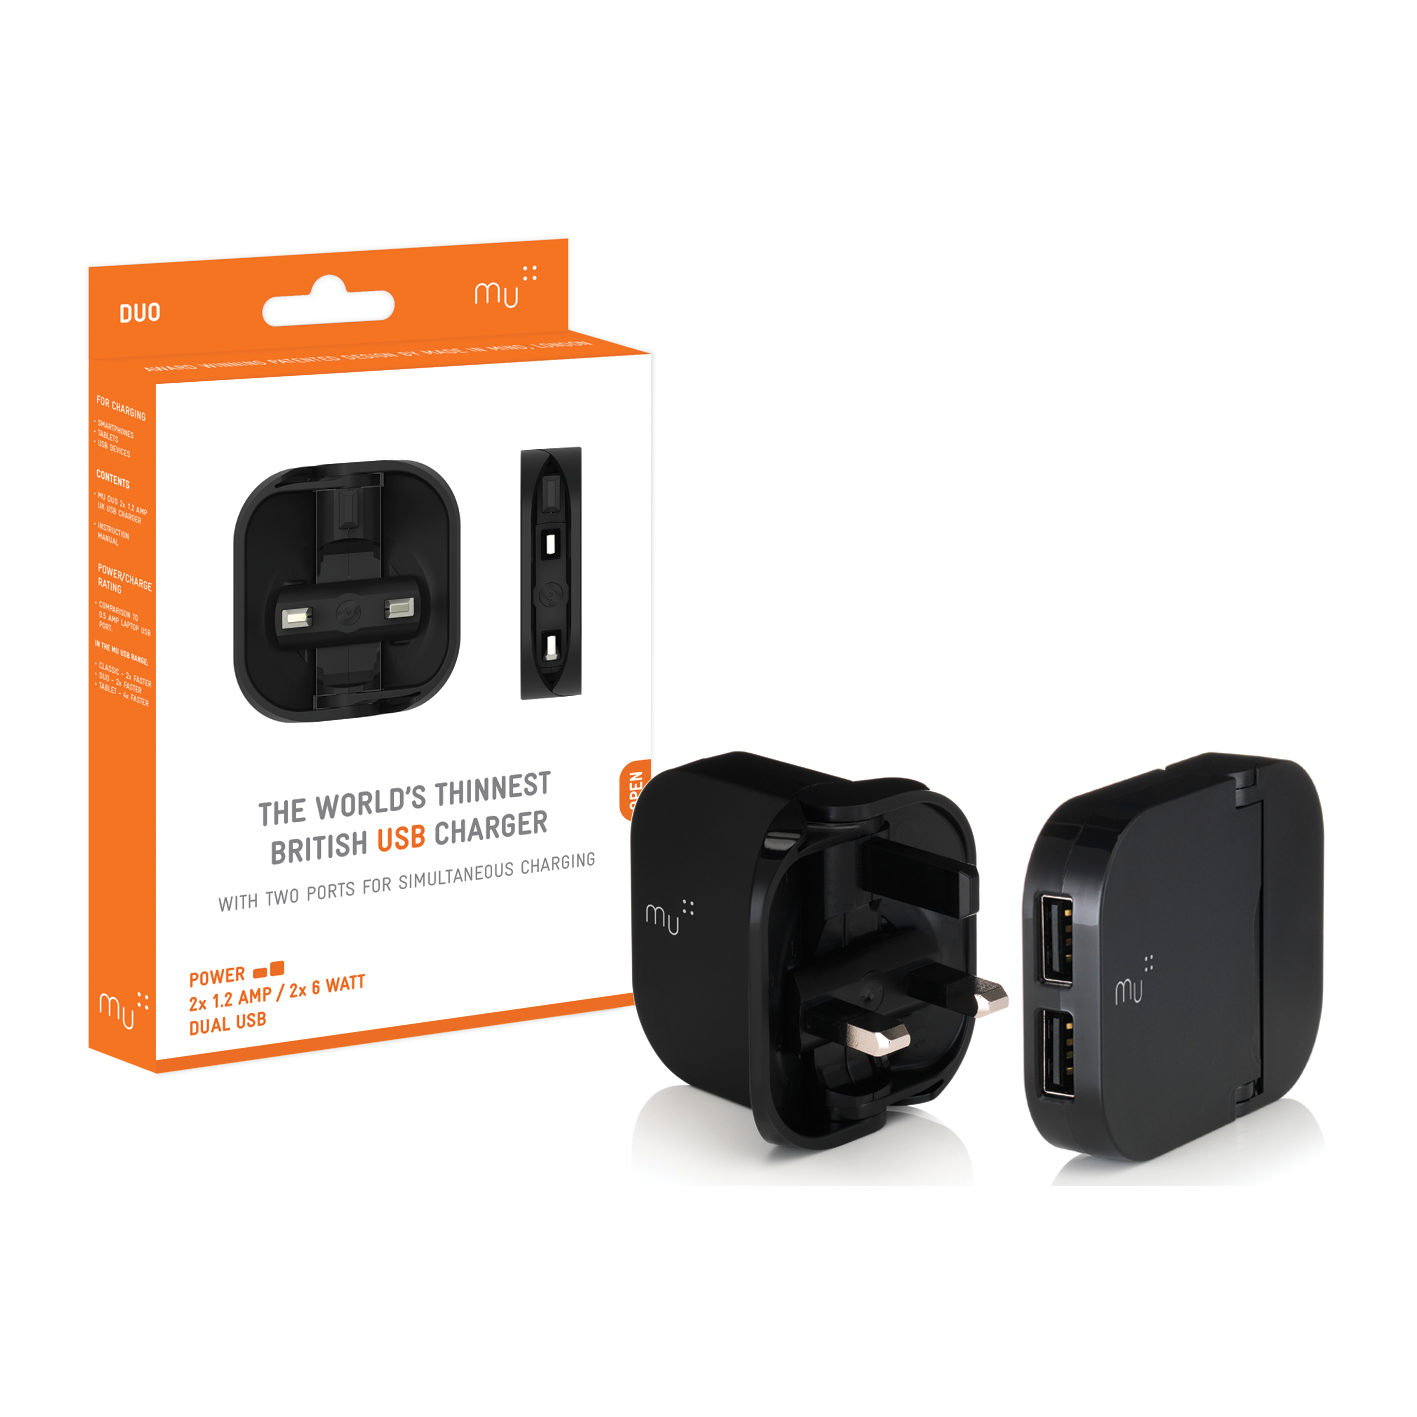 The Folding Plug Mu Wiring Uk To Us Duo Product And Packaging Usb Charger In Black